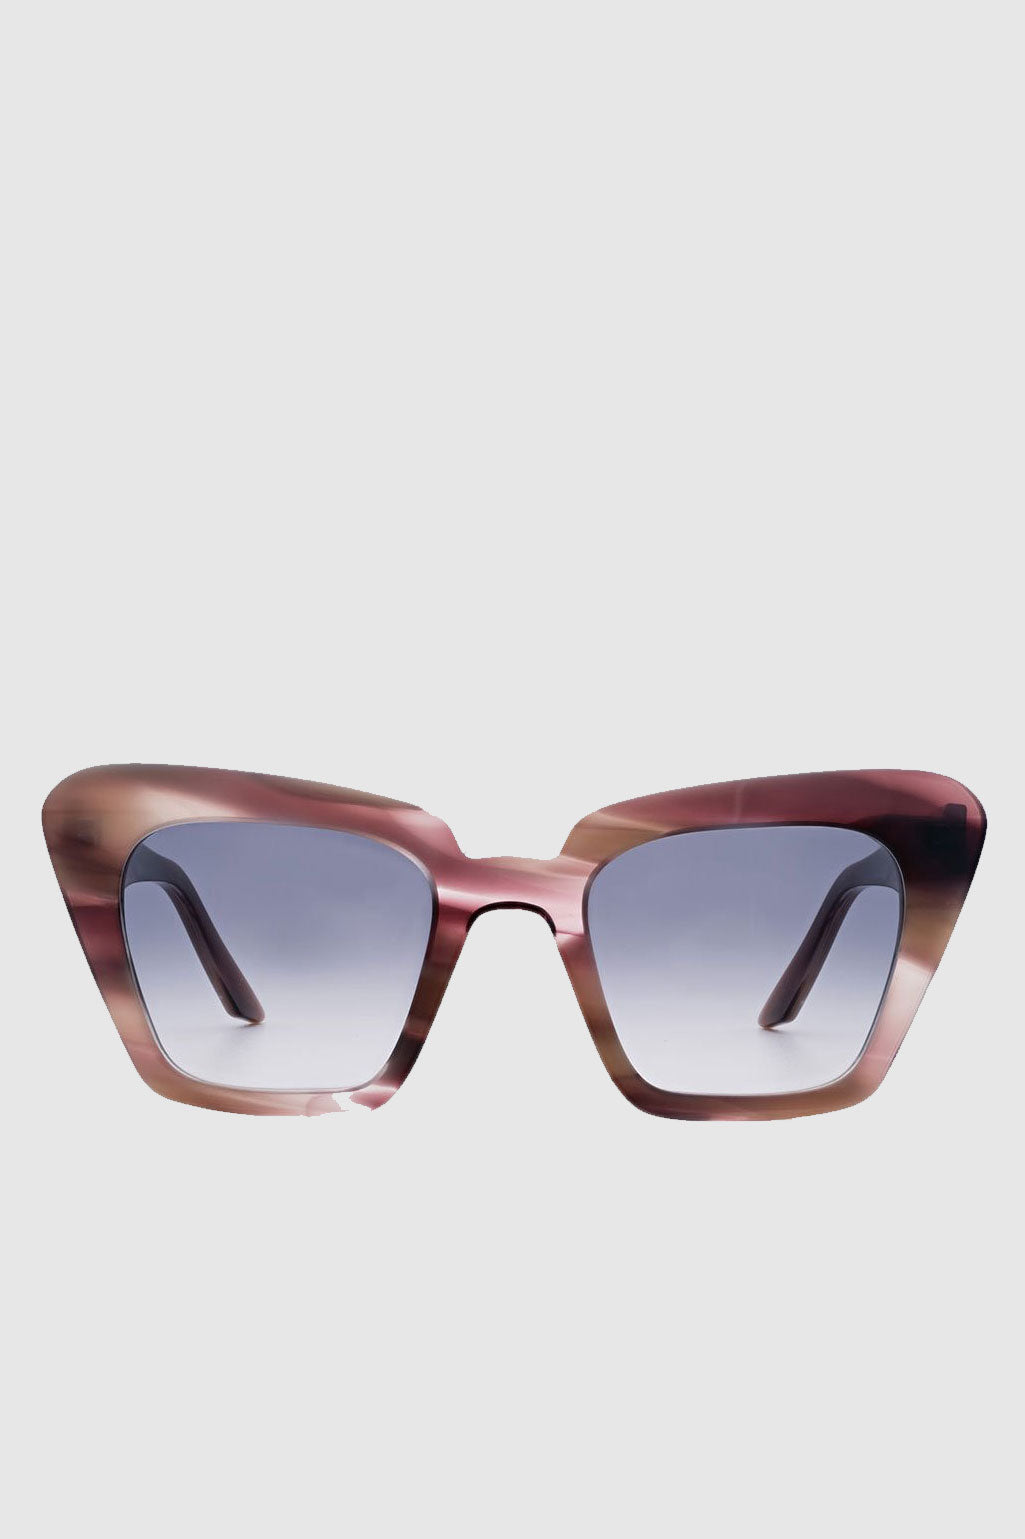 Grove Sunglasses in Orchid